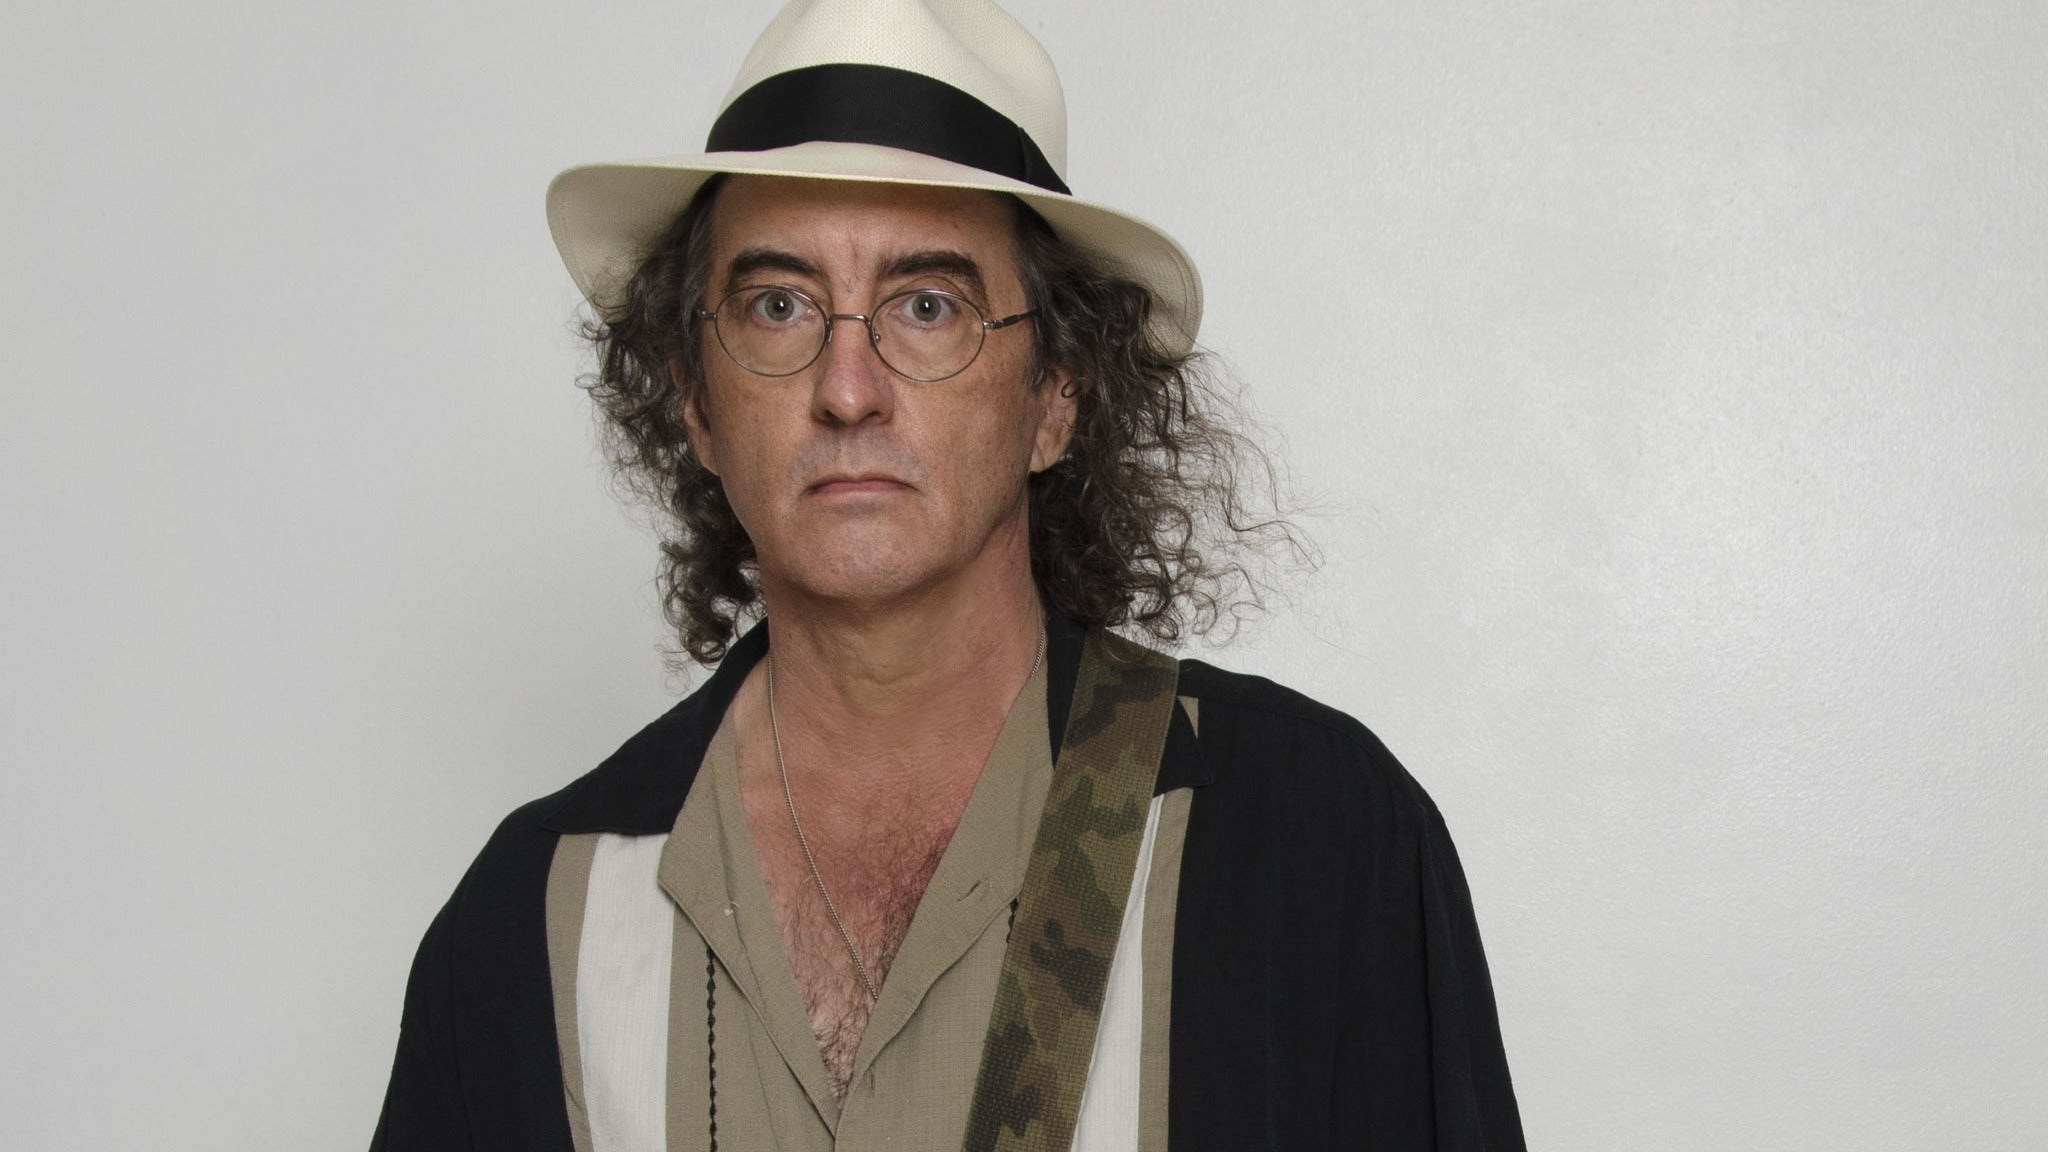 James McMurtry at Cowboy Saloon & Dance Hall